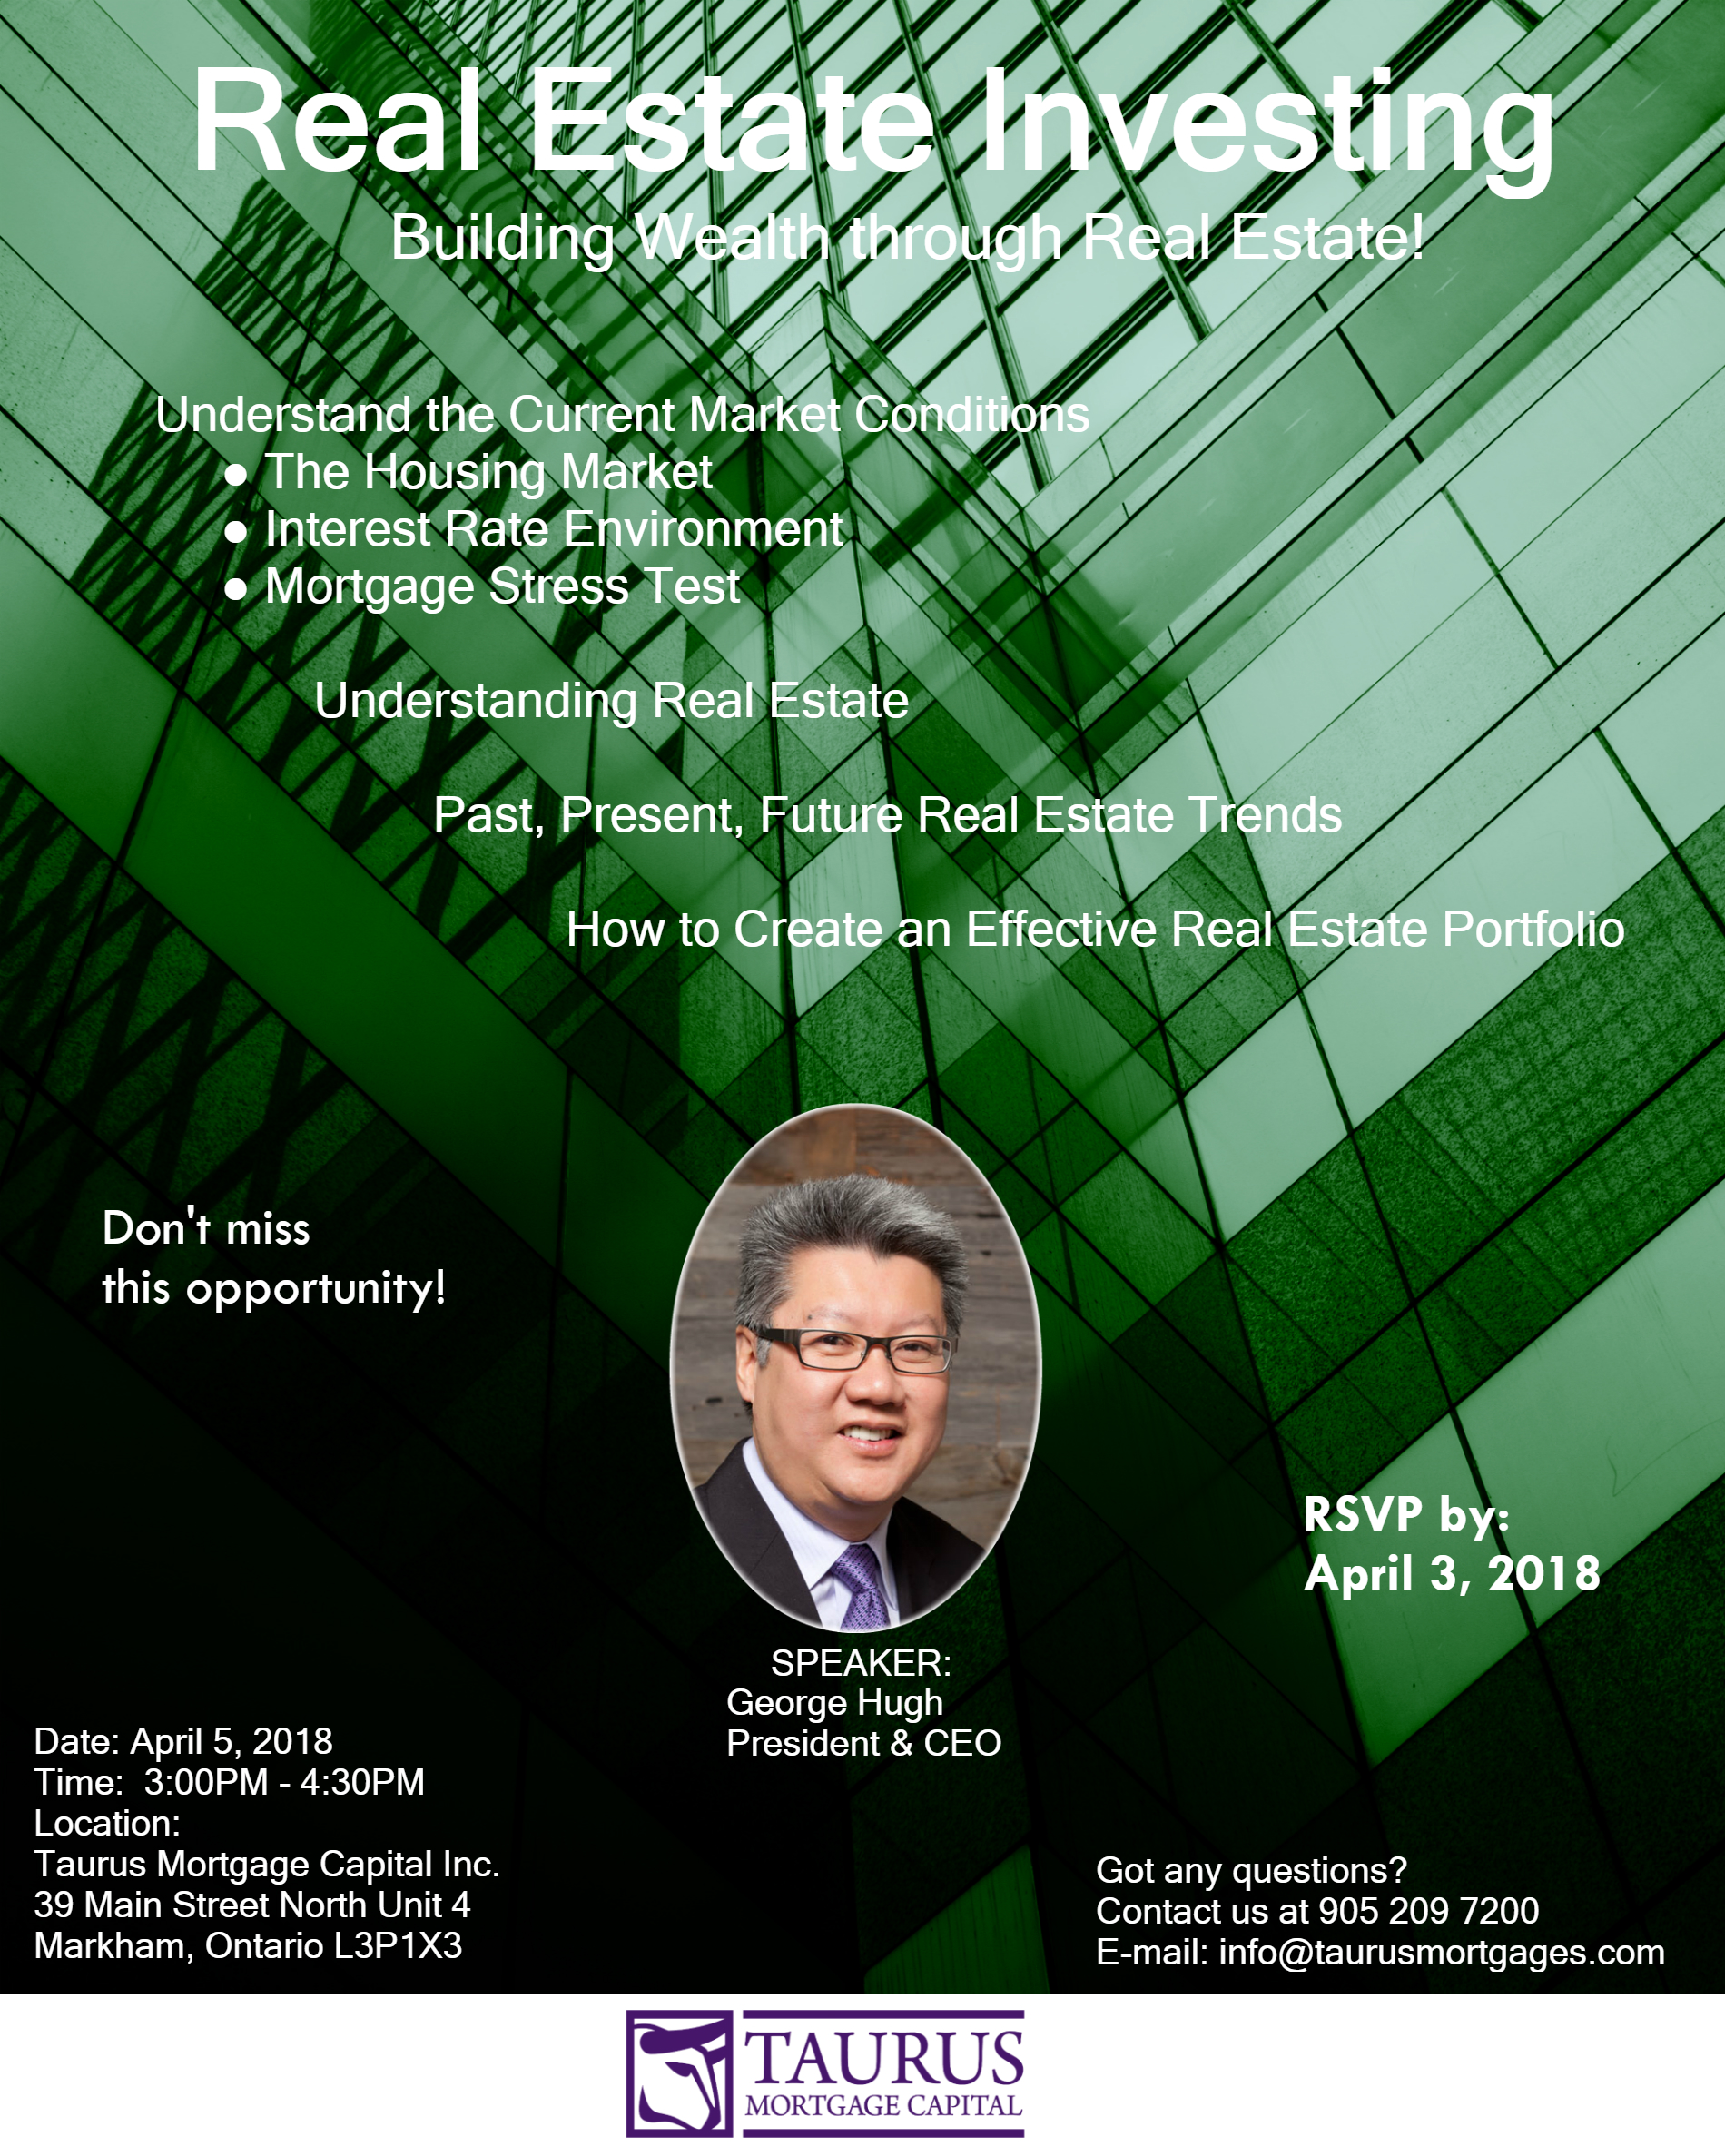 TMC - Real Estate Investing Seminar - April 5, 2018.jpg